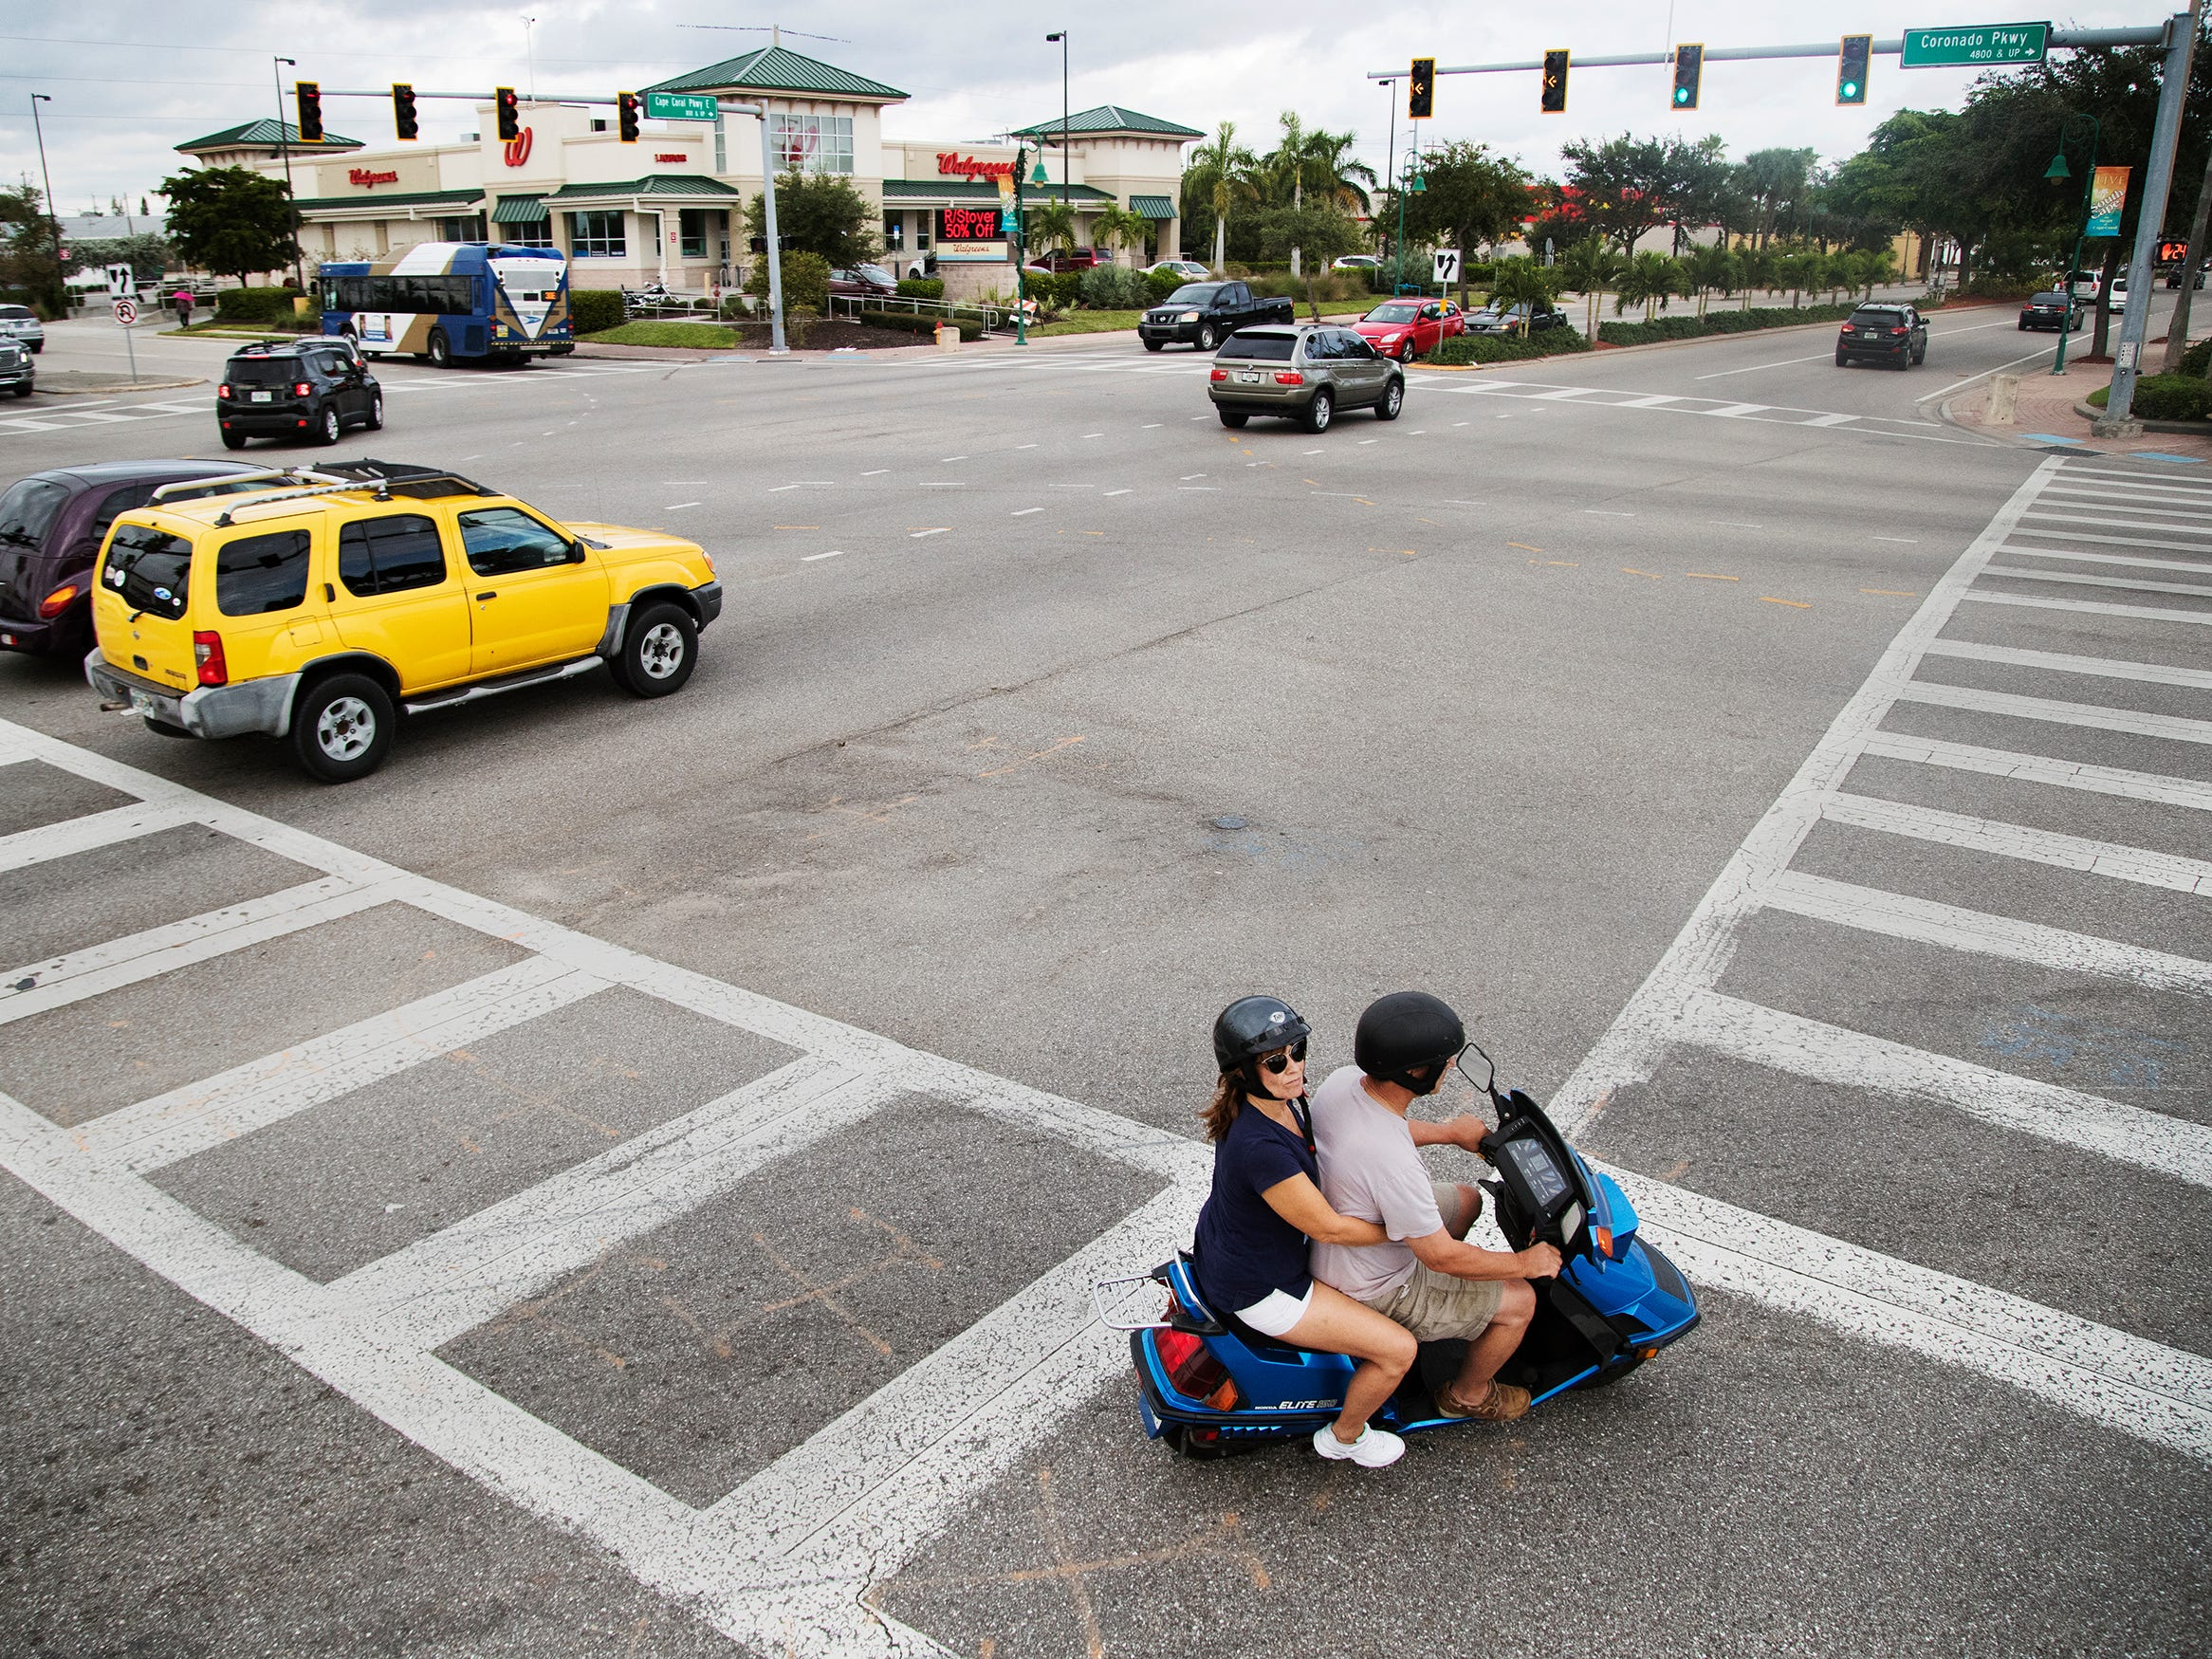 Traffic flows recently at the intersection of Cape Coral Parkway and Coronado Parkway in Cape Coral.